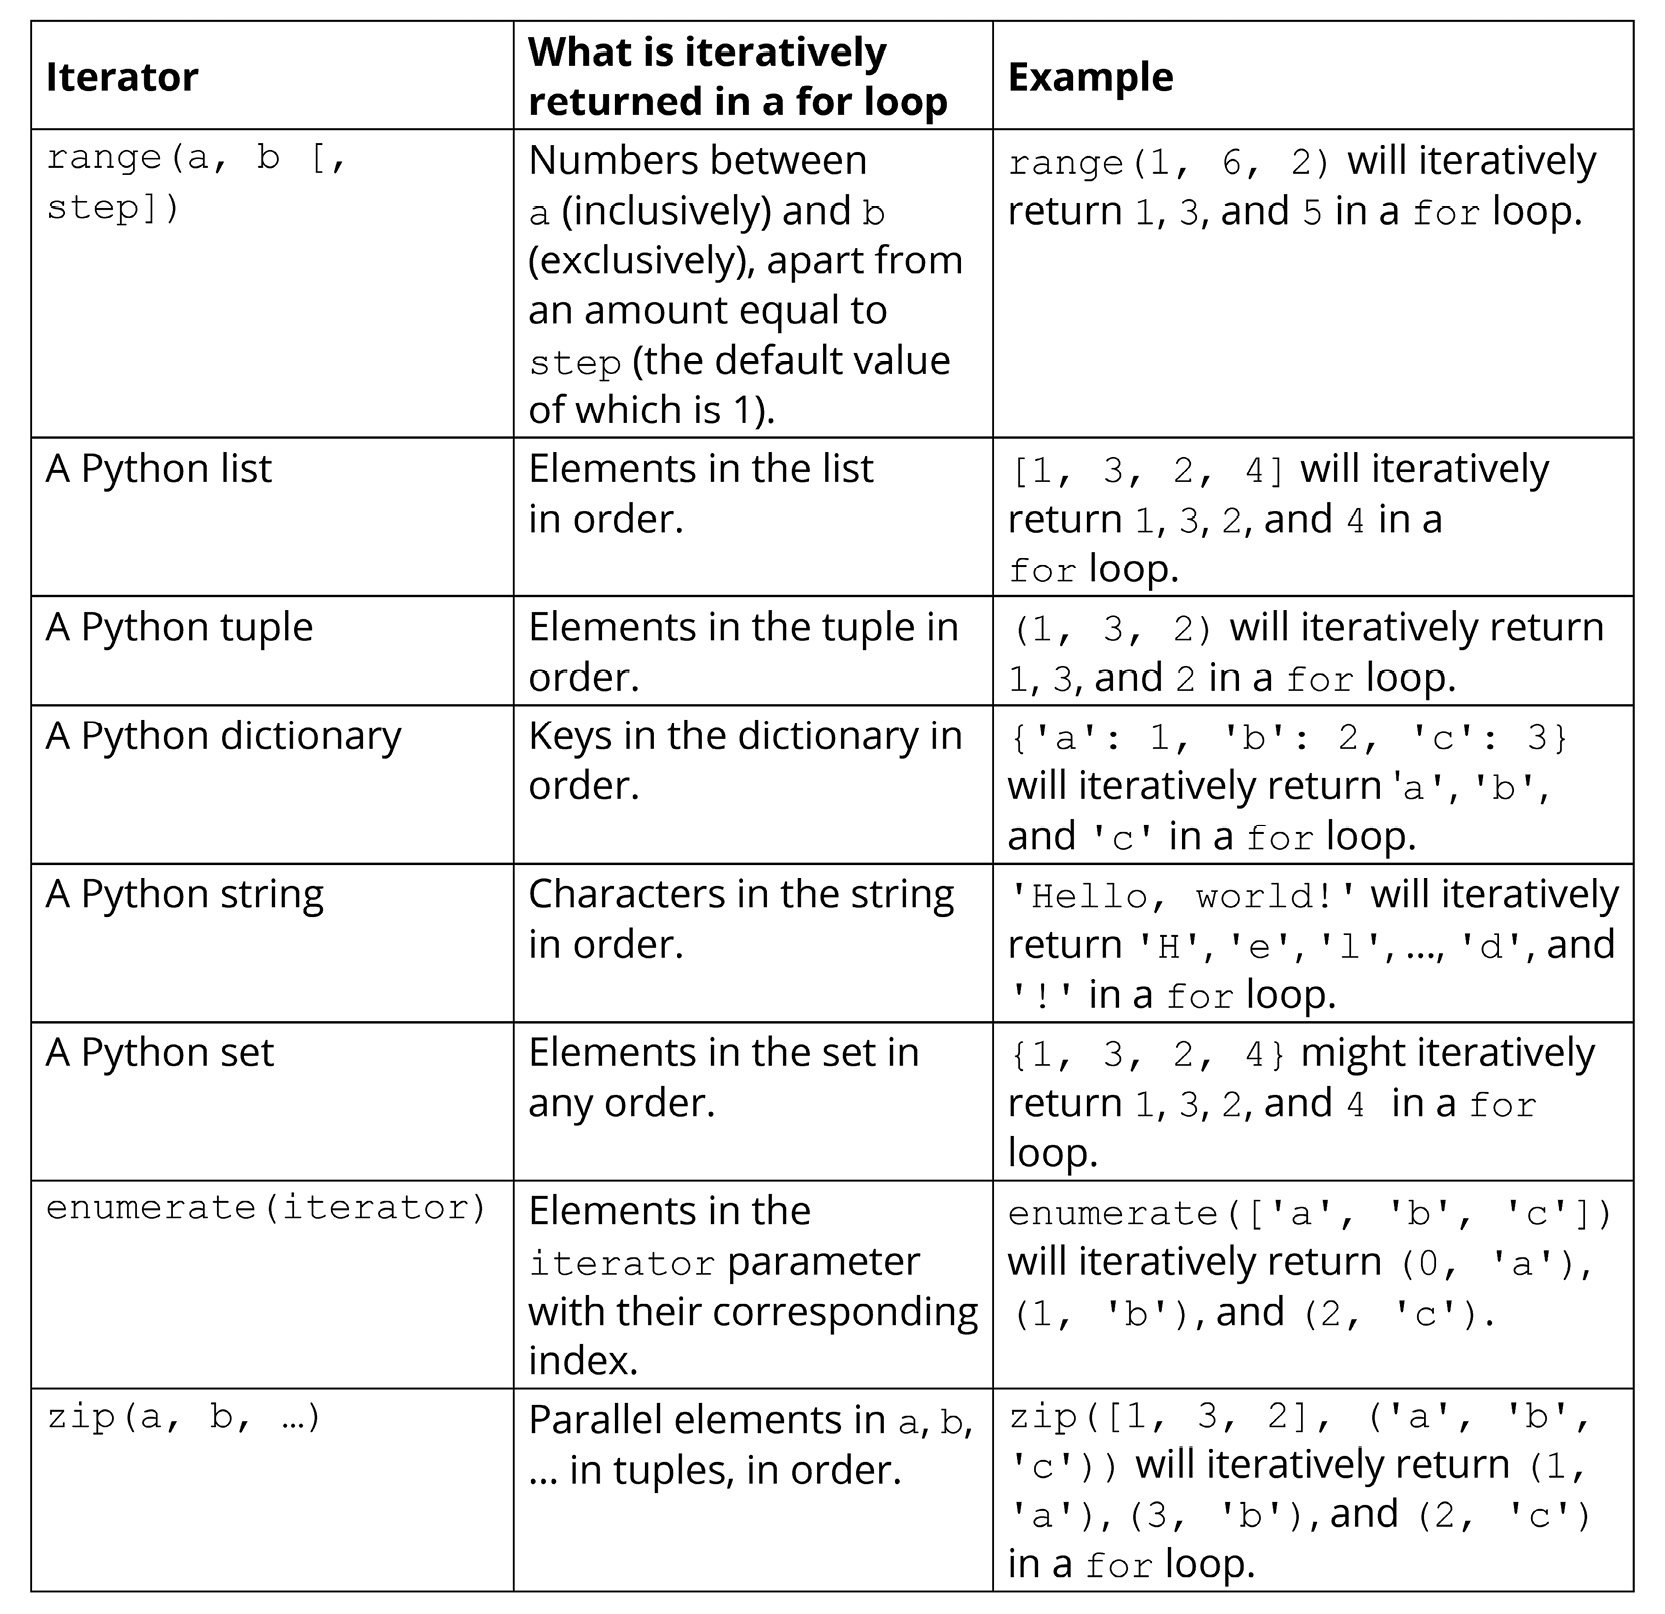 Figure 1.1: List of datasets and their examples